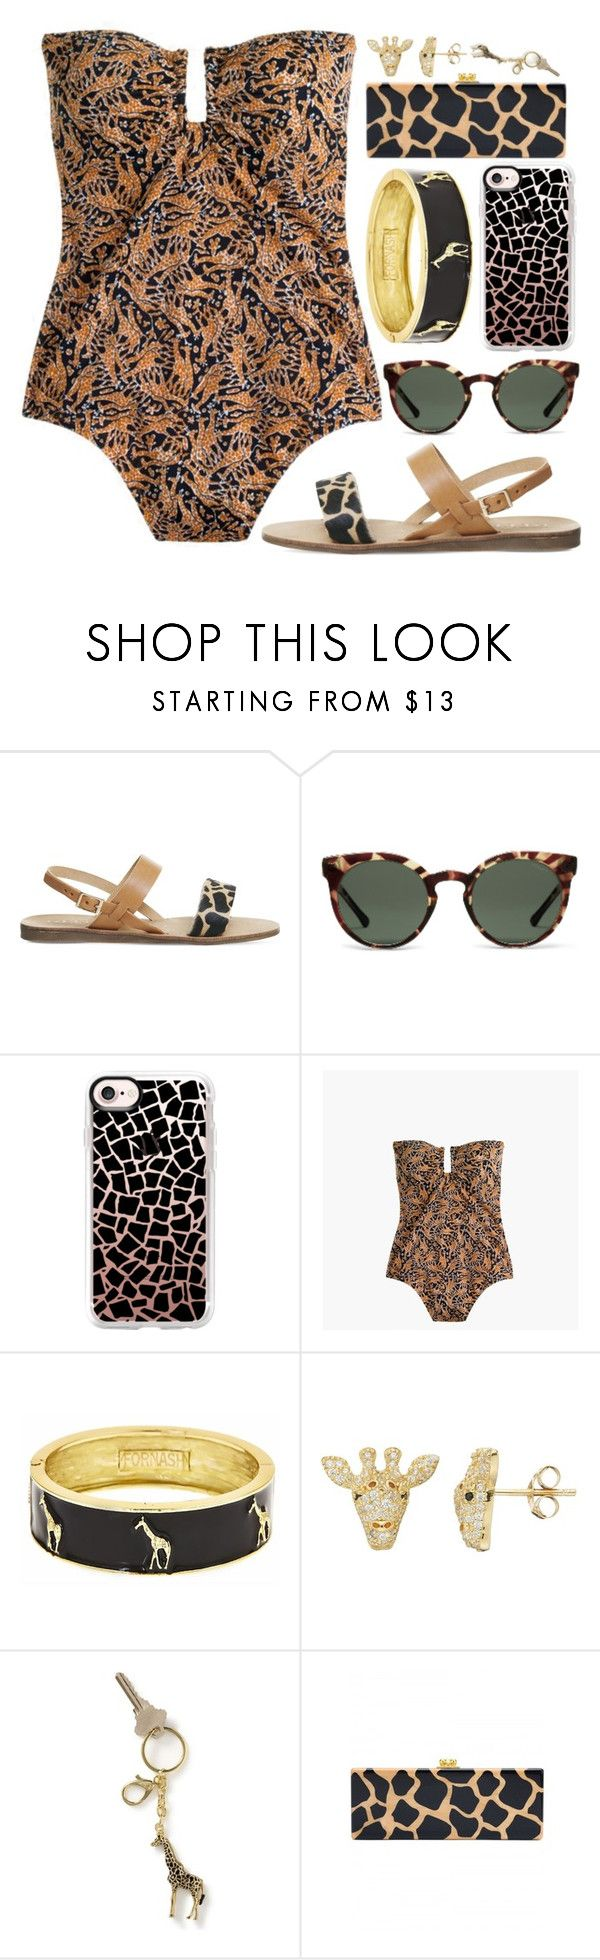 """Height Of Swimwear"" by rachael-aislynn ❤ liked on Polyvore featuring Office, Casetify, Drakes London, Fornash, SOPHIE MILLER and Edie Parker"